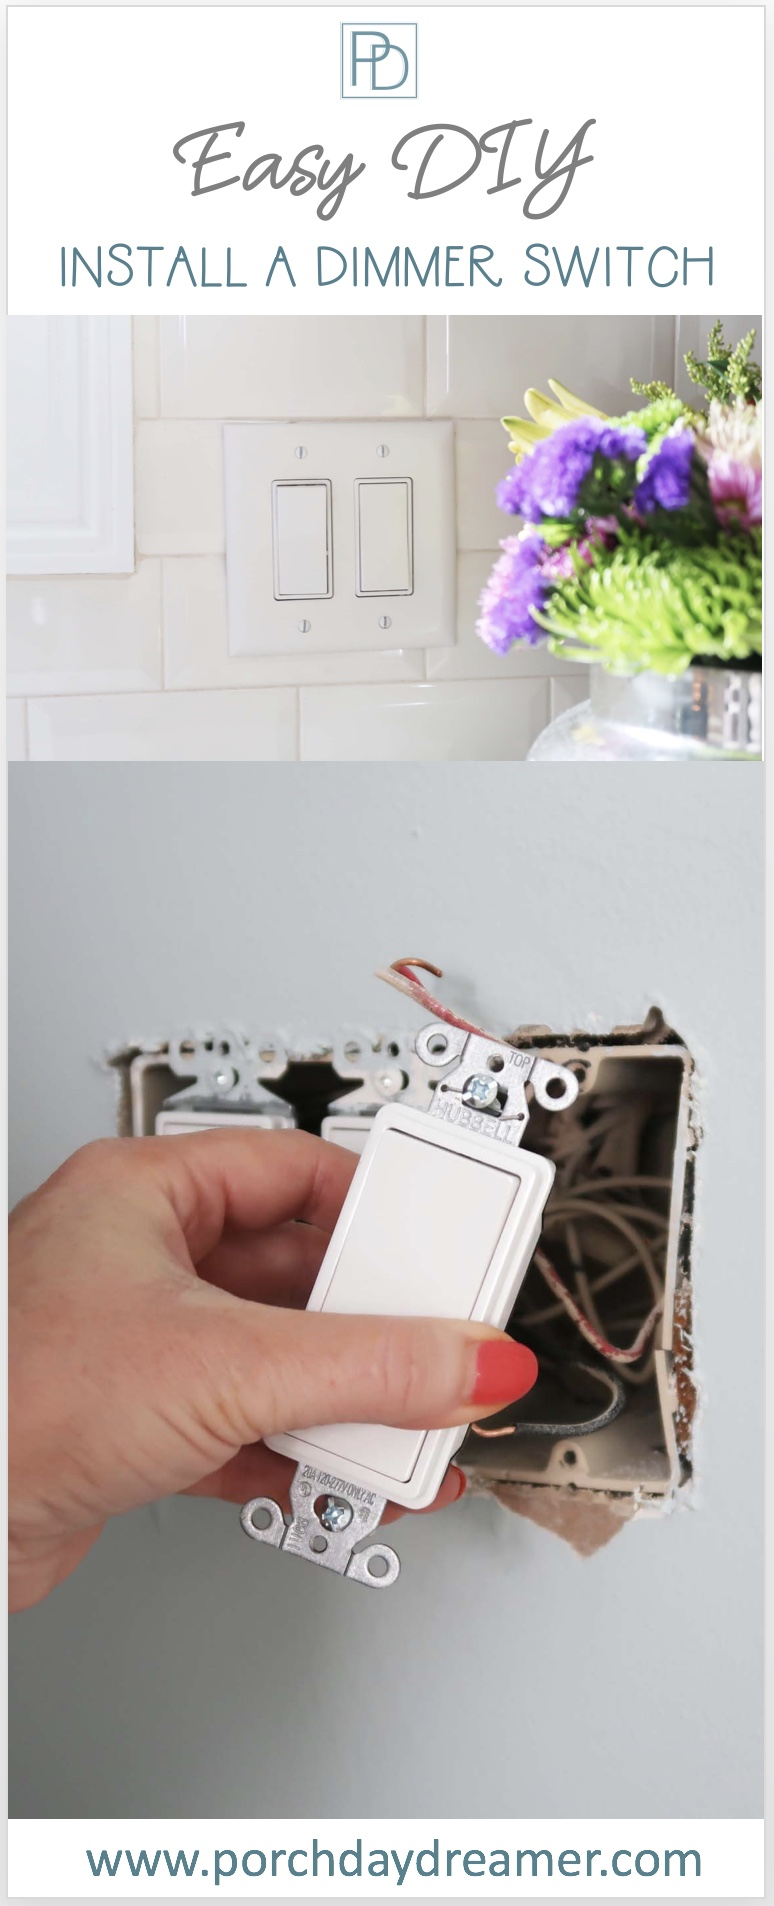 How-to Install a Dimmer or Light Switch - Porch Daydreamer